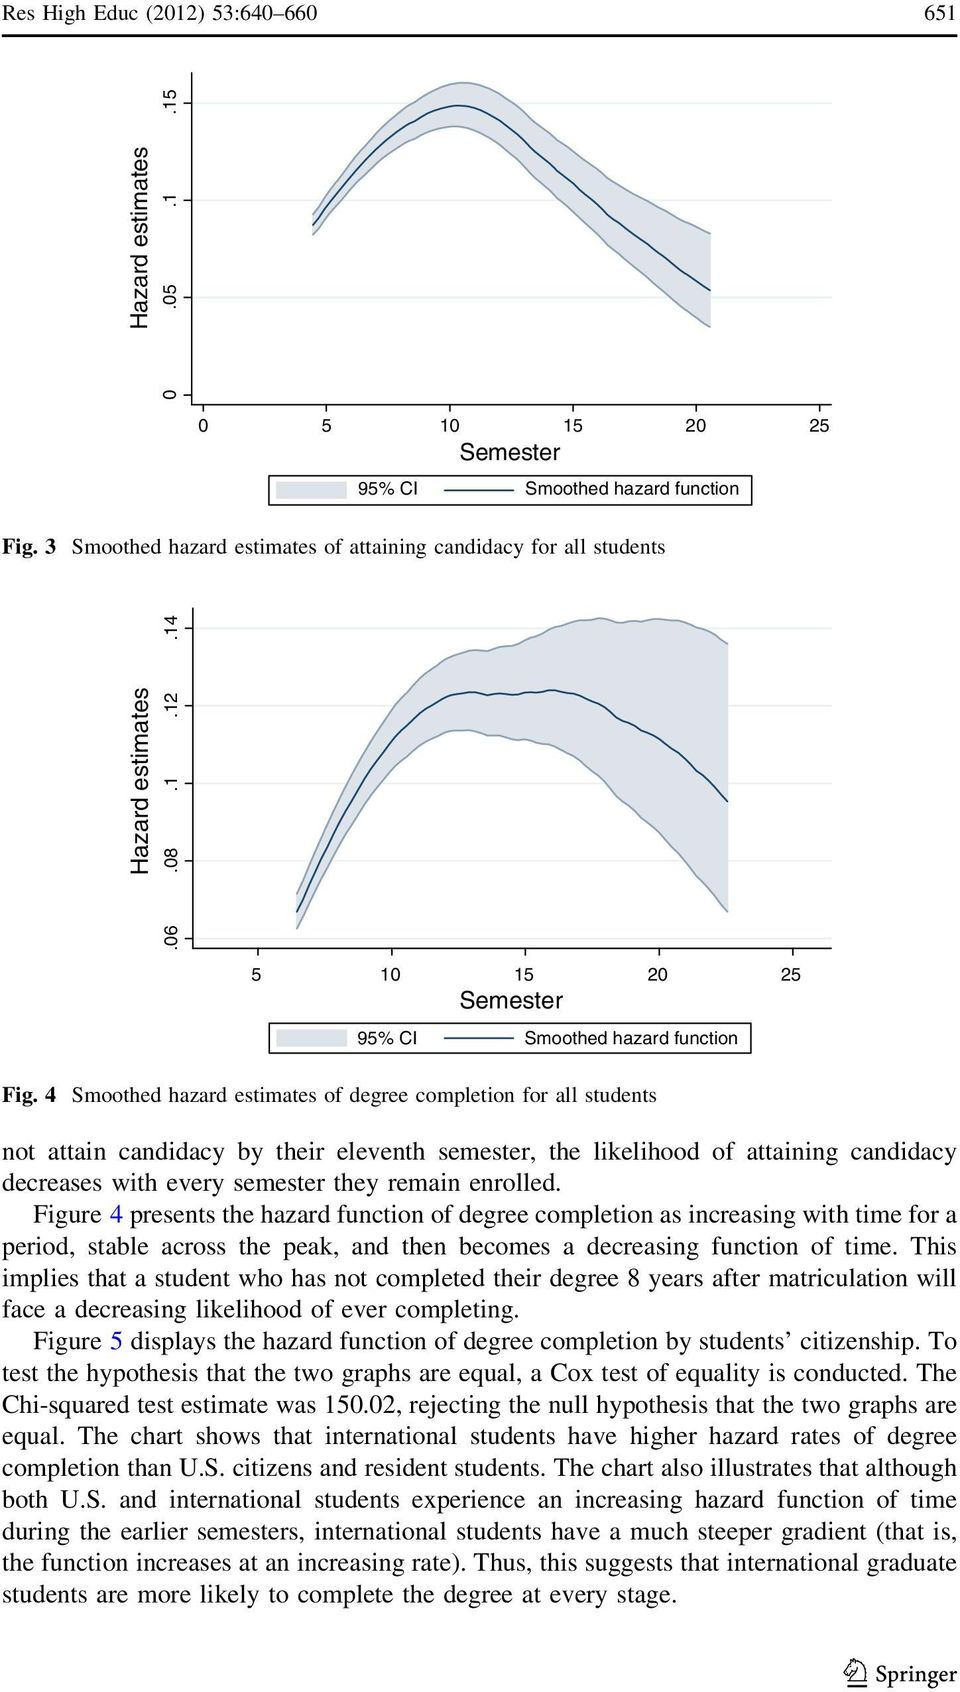 4 Smoothed hazard estimates of degree completion for all students not attain candidacy by their eleventh semester, the likelihood of attaining candidacy decreases with every semester they remain